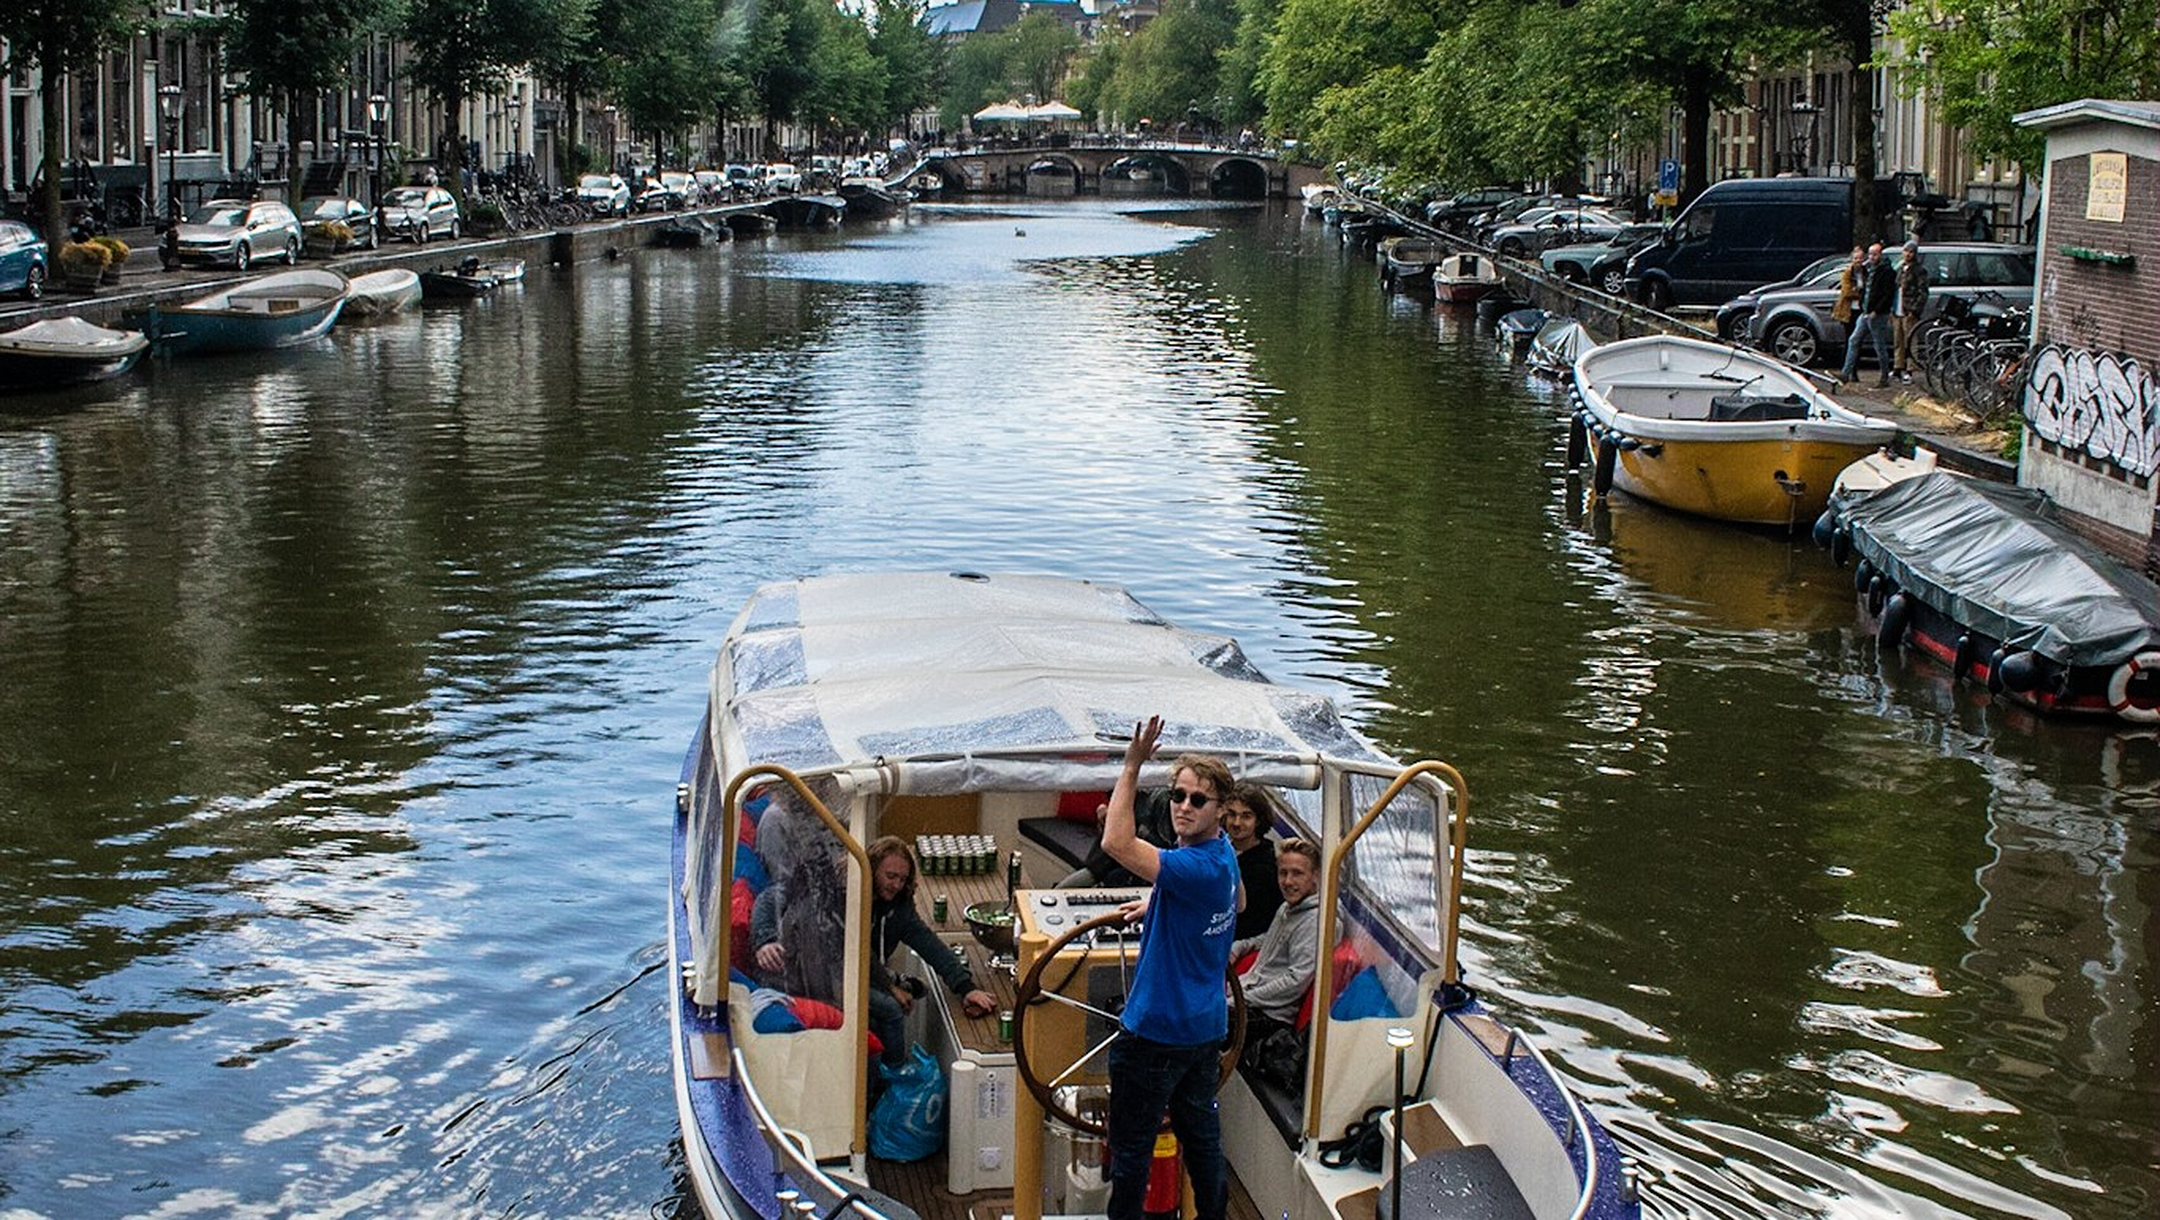 A boat belonging to the We Are Amsterdam canal tour operator sails in the center of Amsterdam, the Netherlands in 2019. (Courtesy of We Are Amsterdam)